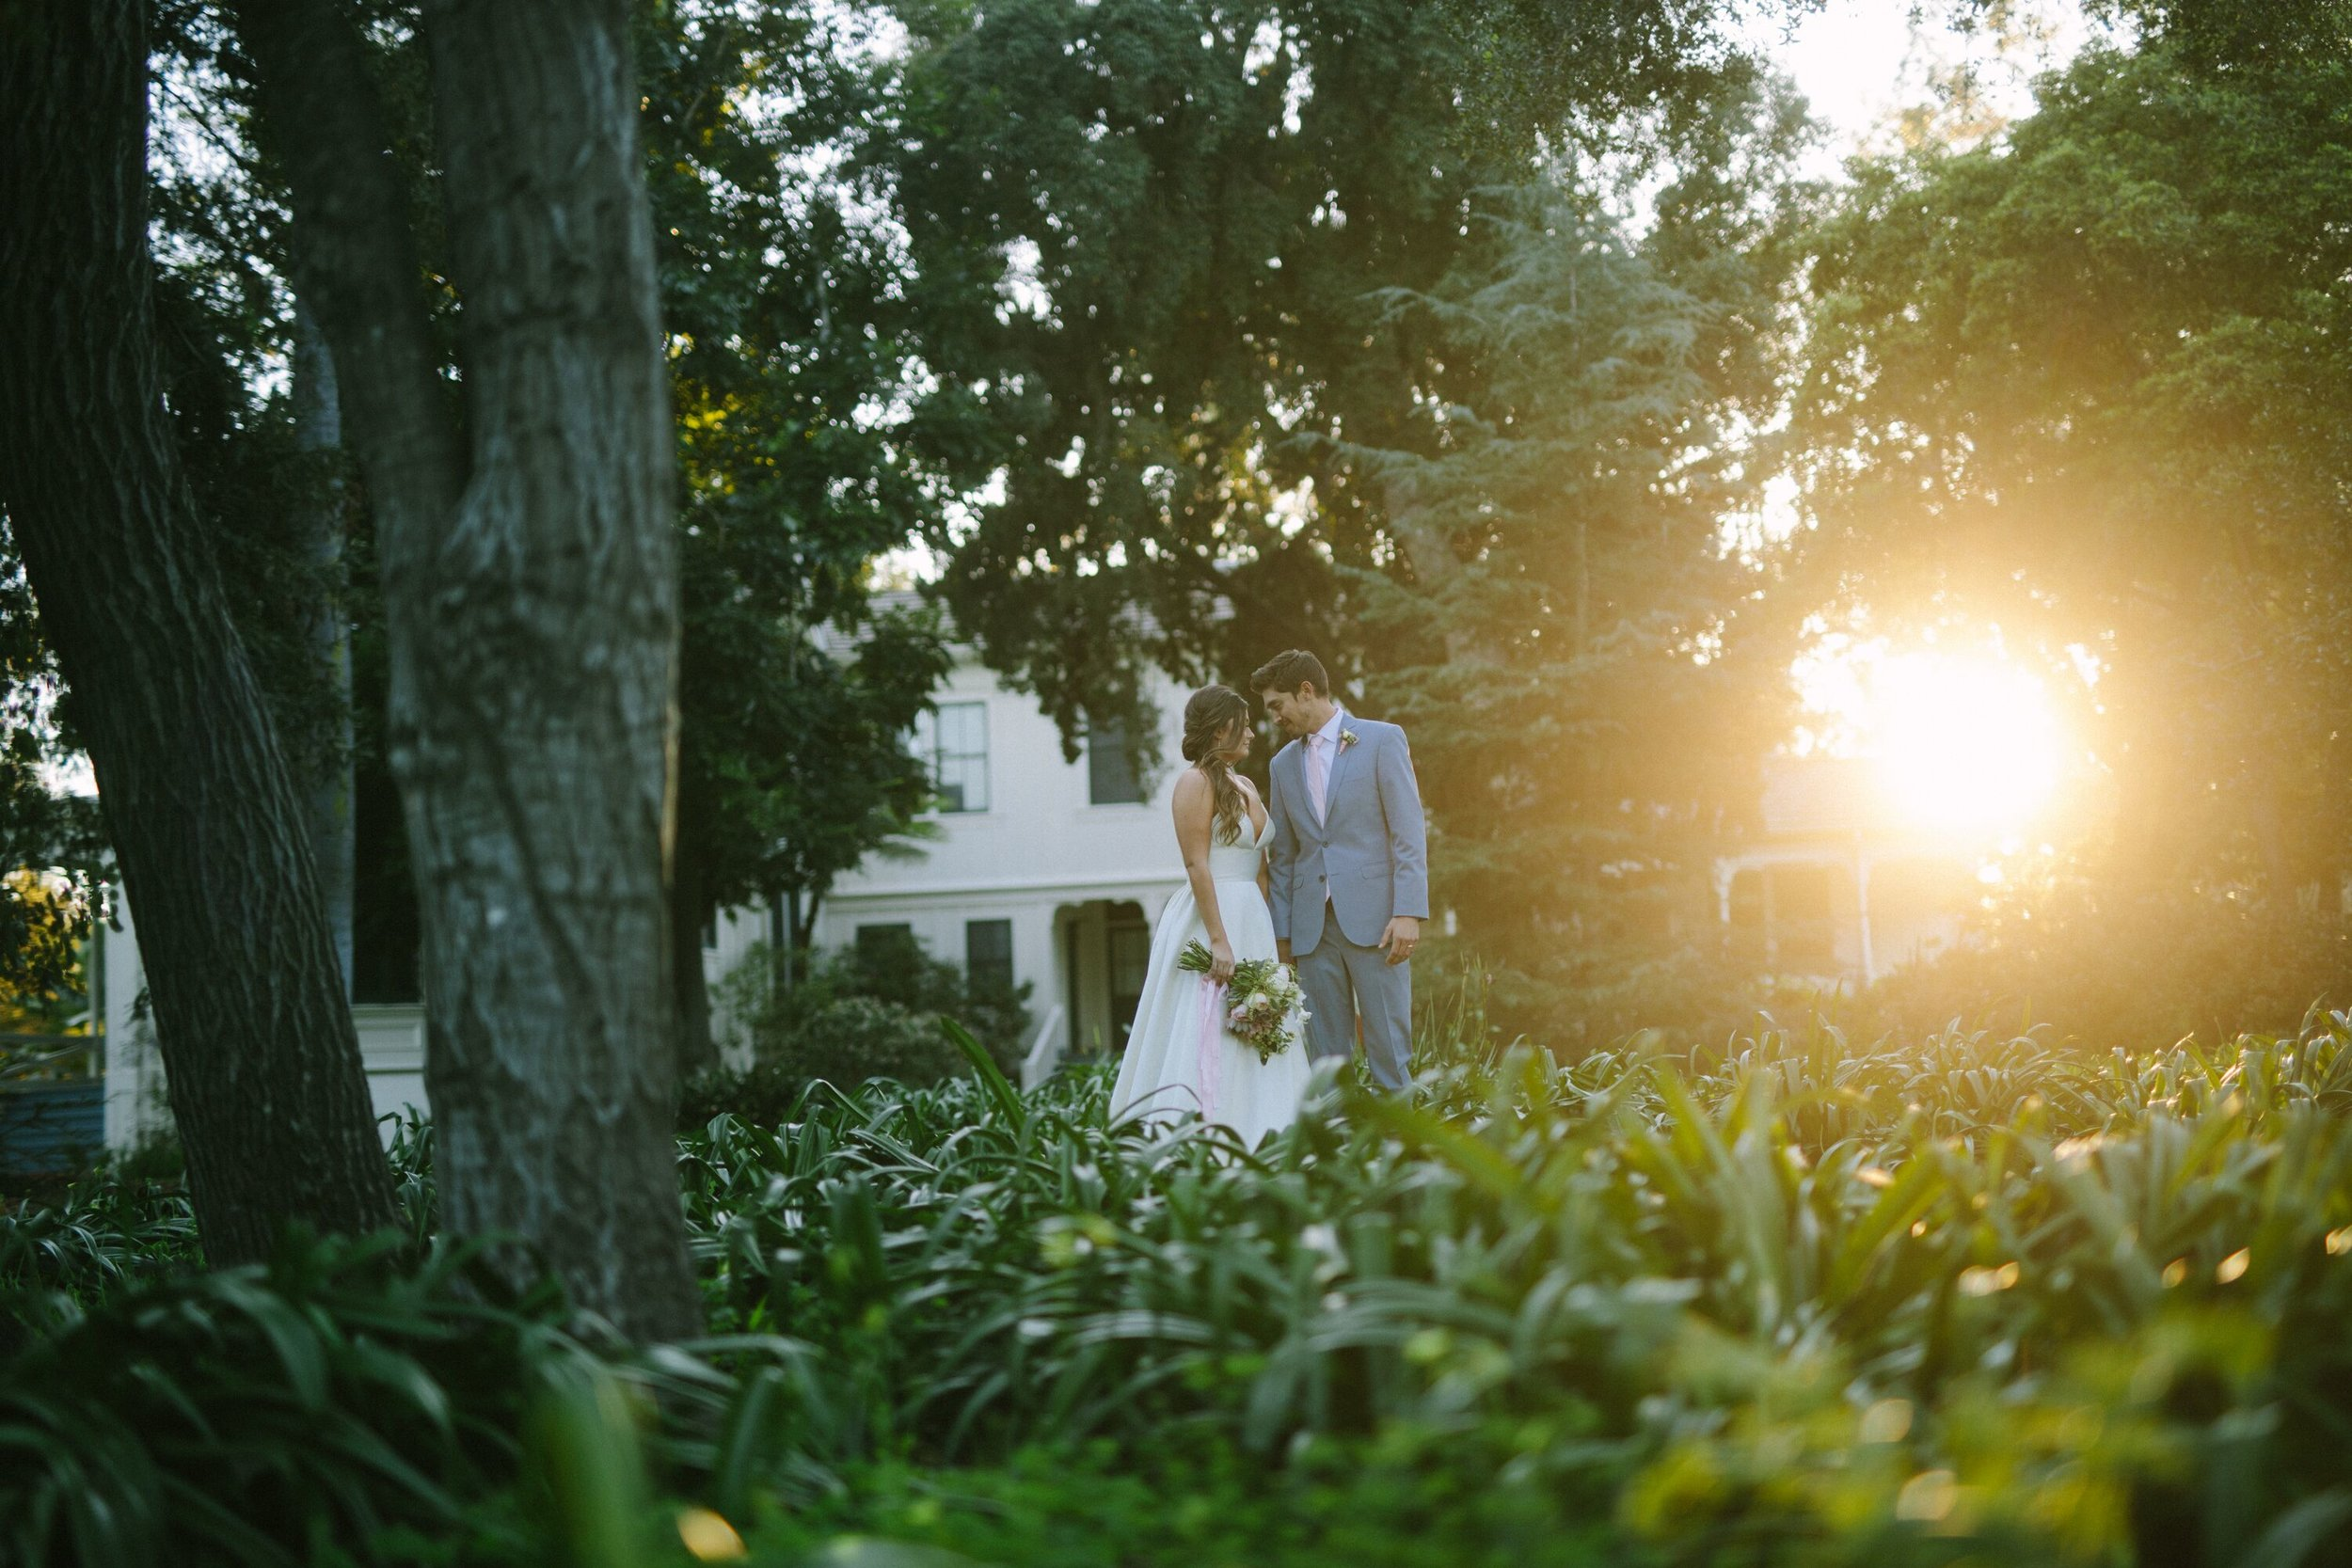 www.santabarbarawedding.com | Photographer: Patrick Ang | Venue: Rancho La Patera & Stow House | Wedding Planner: Elyse Rowen of Elyse Events | Bride and Groom in Landscape